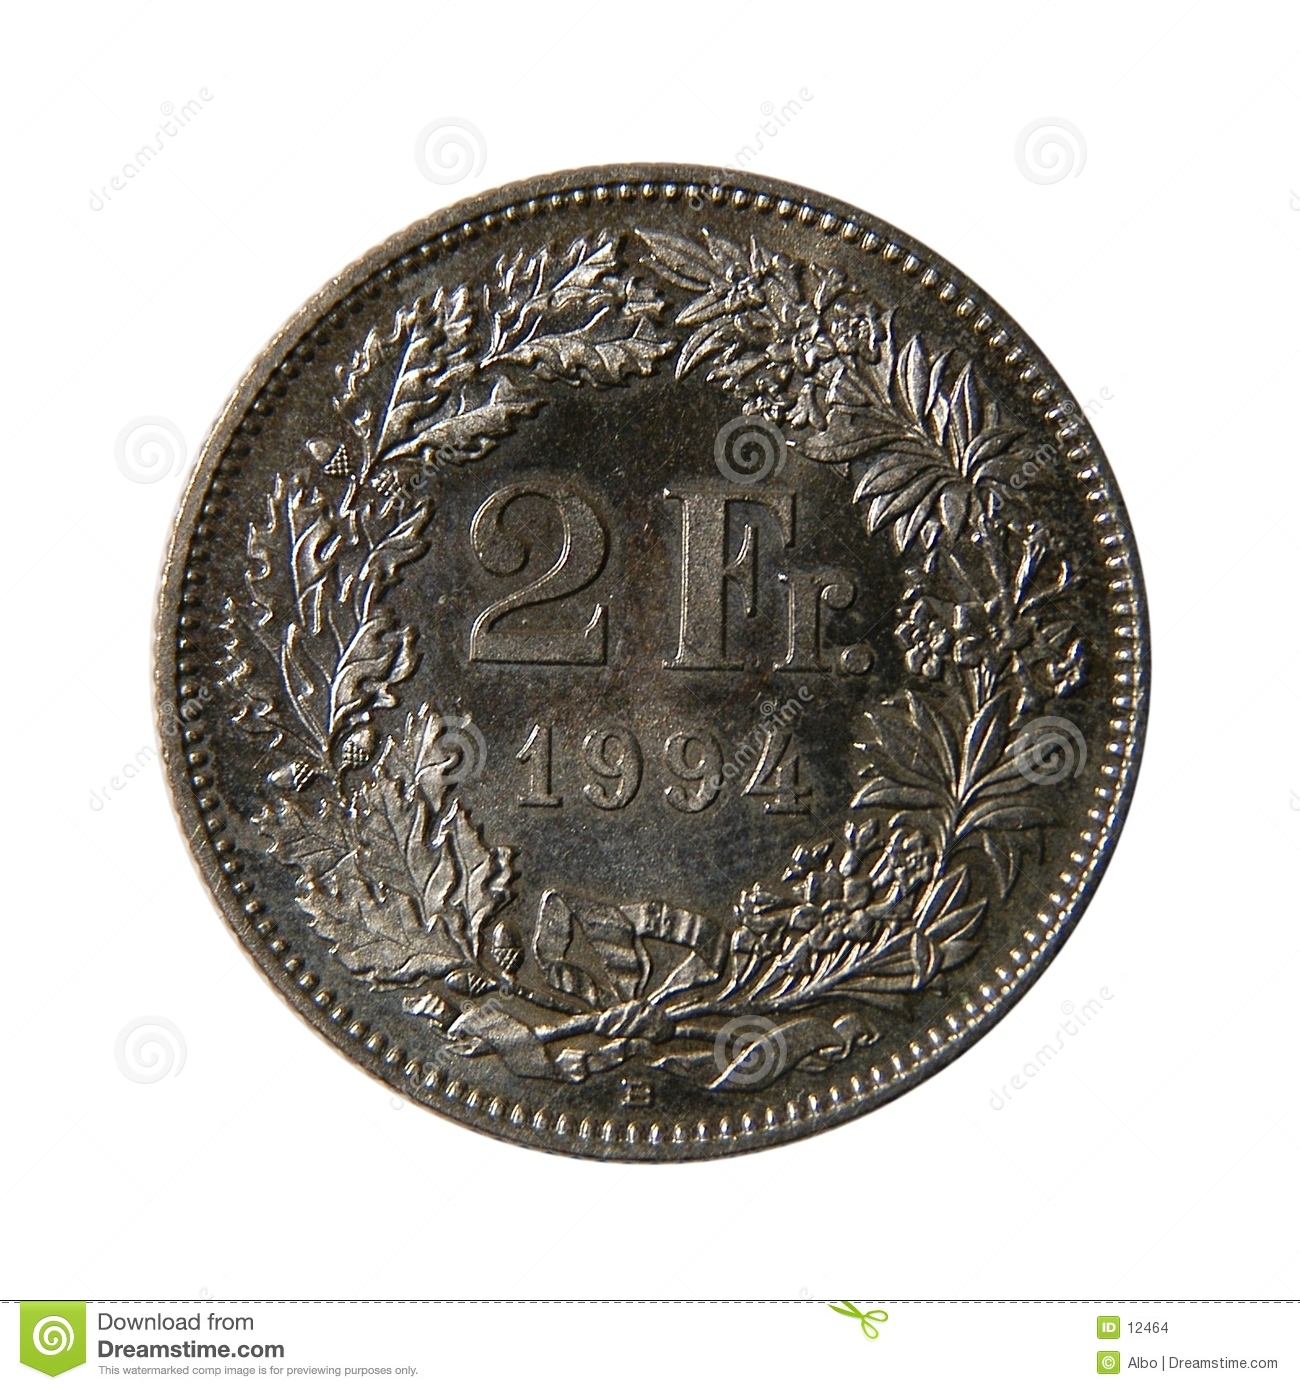 Two french francs